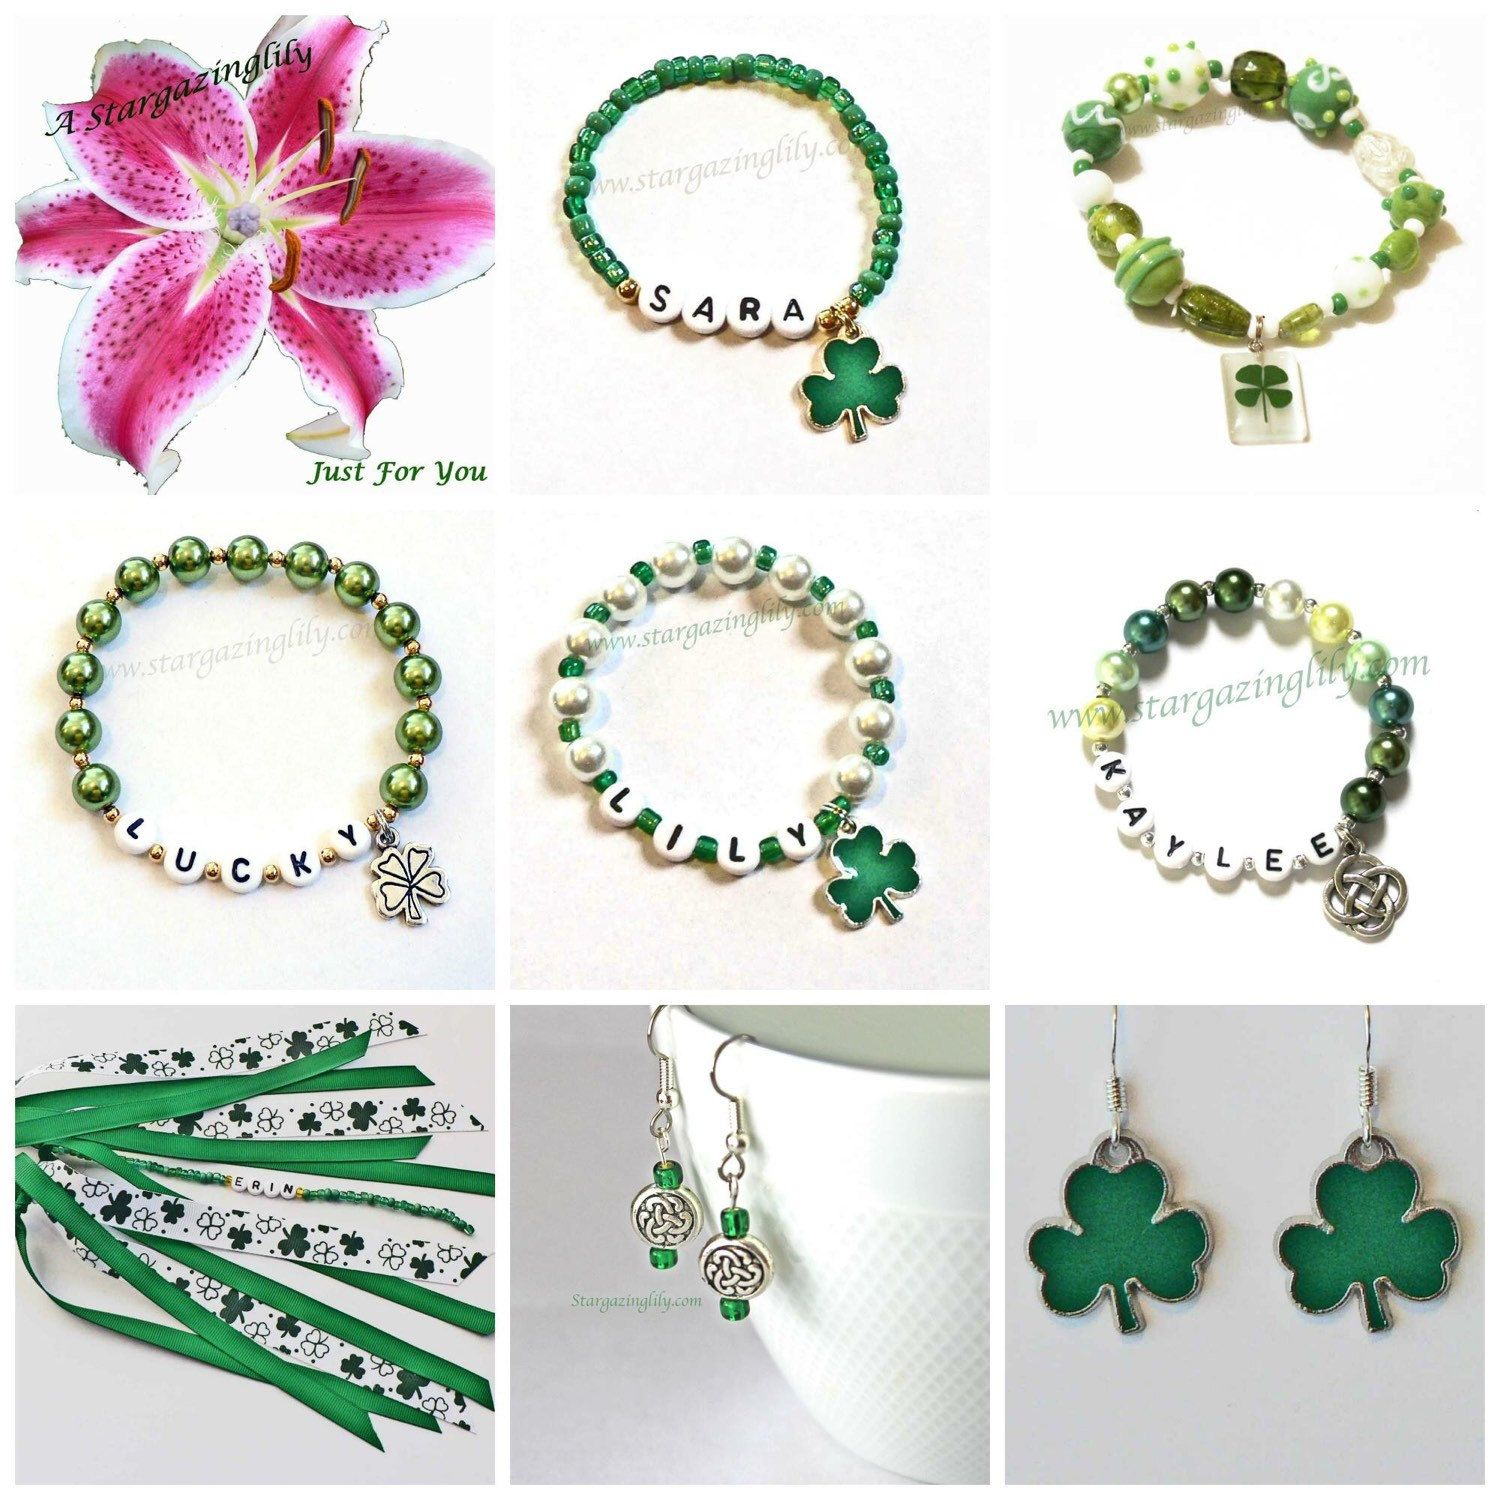 Green lucky shamrock necklace four leaf clover charm emerald green - Ladies St Patrick S Day Lucky Charm Bracelet With Silver Tone 4 Leaf Clover Shamrock Charm Green Glass Pearls Gold Accent